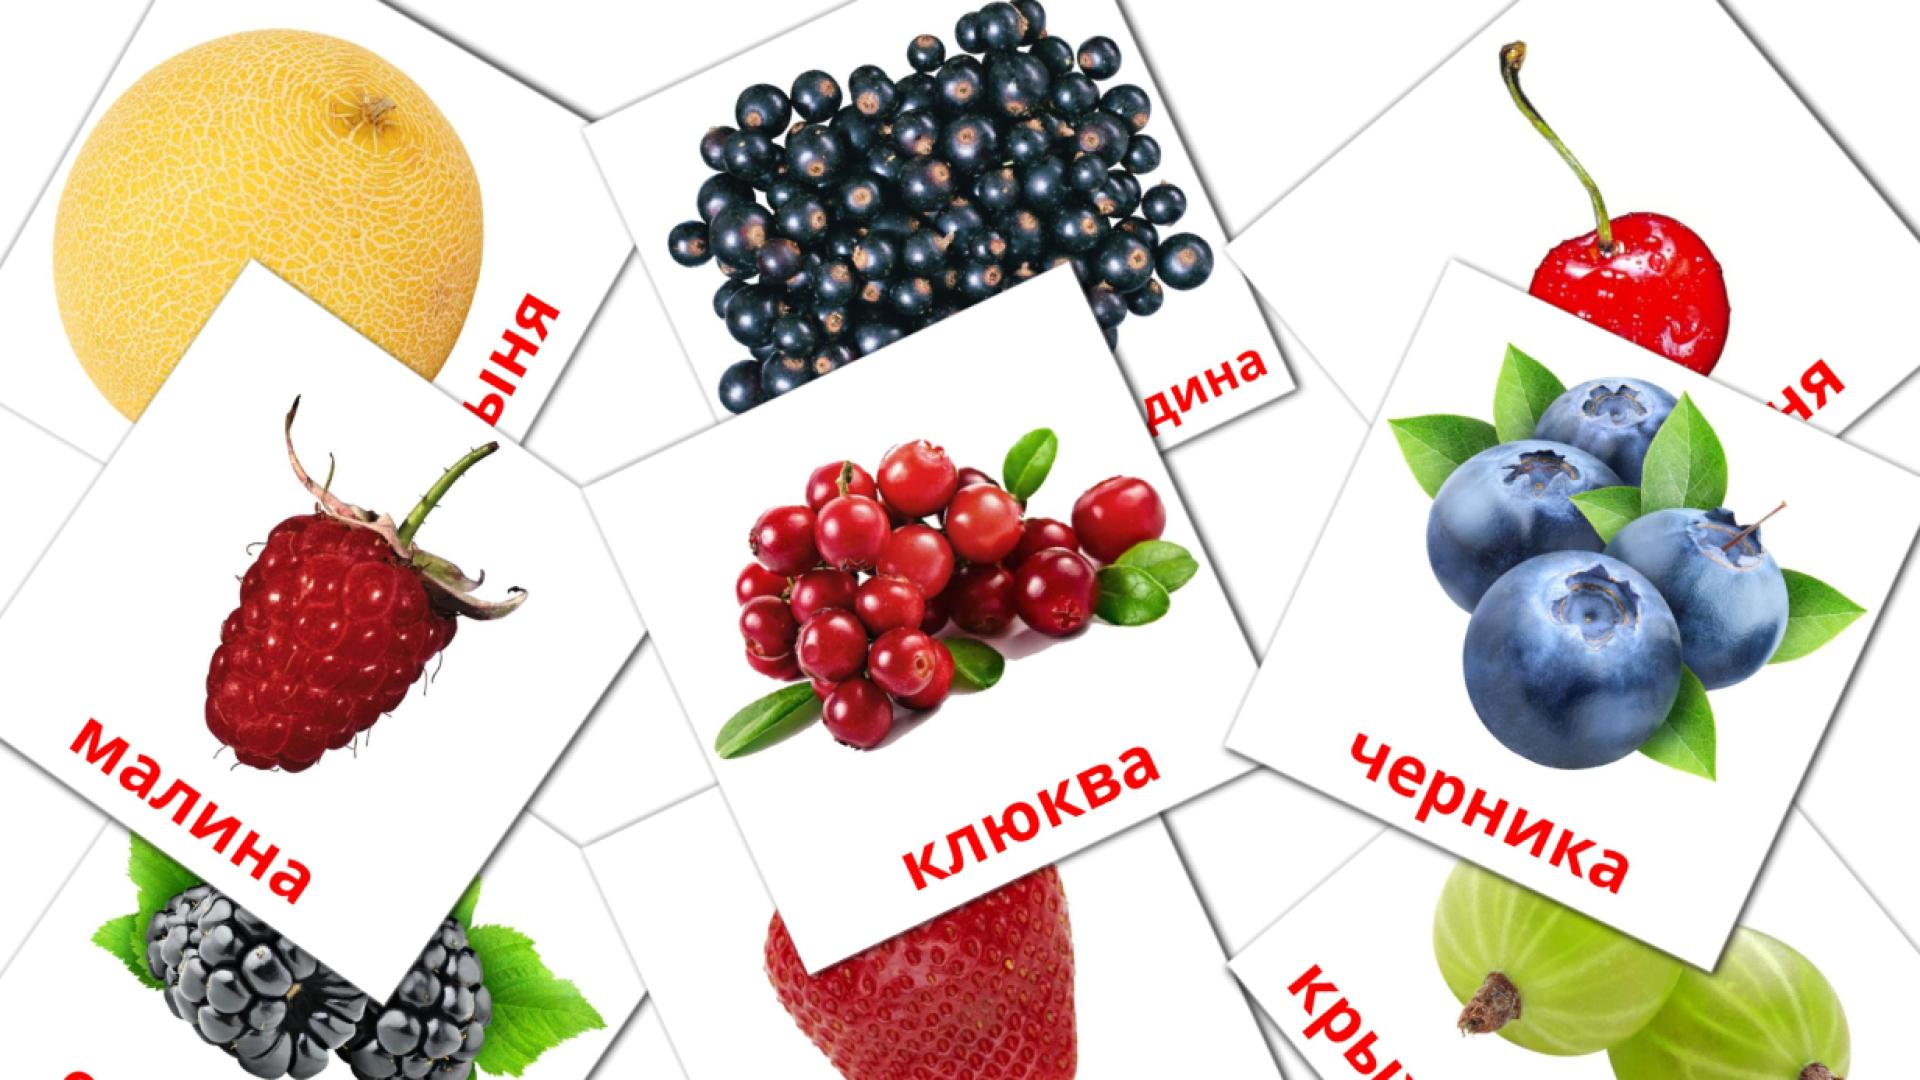 Berries flashcards